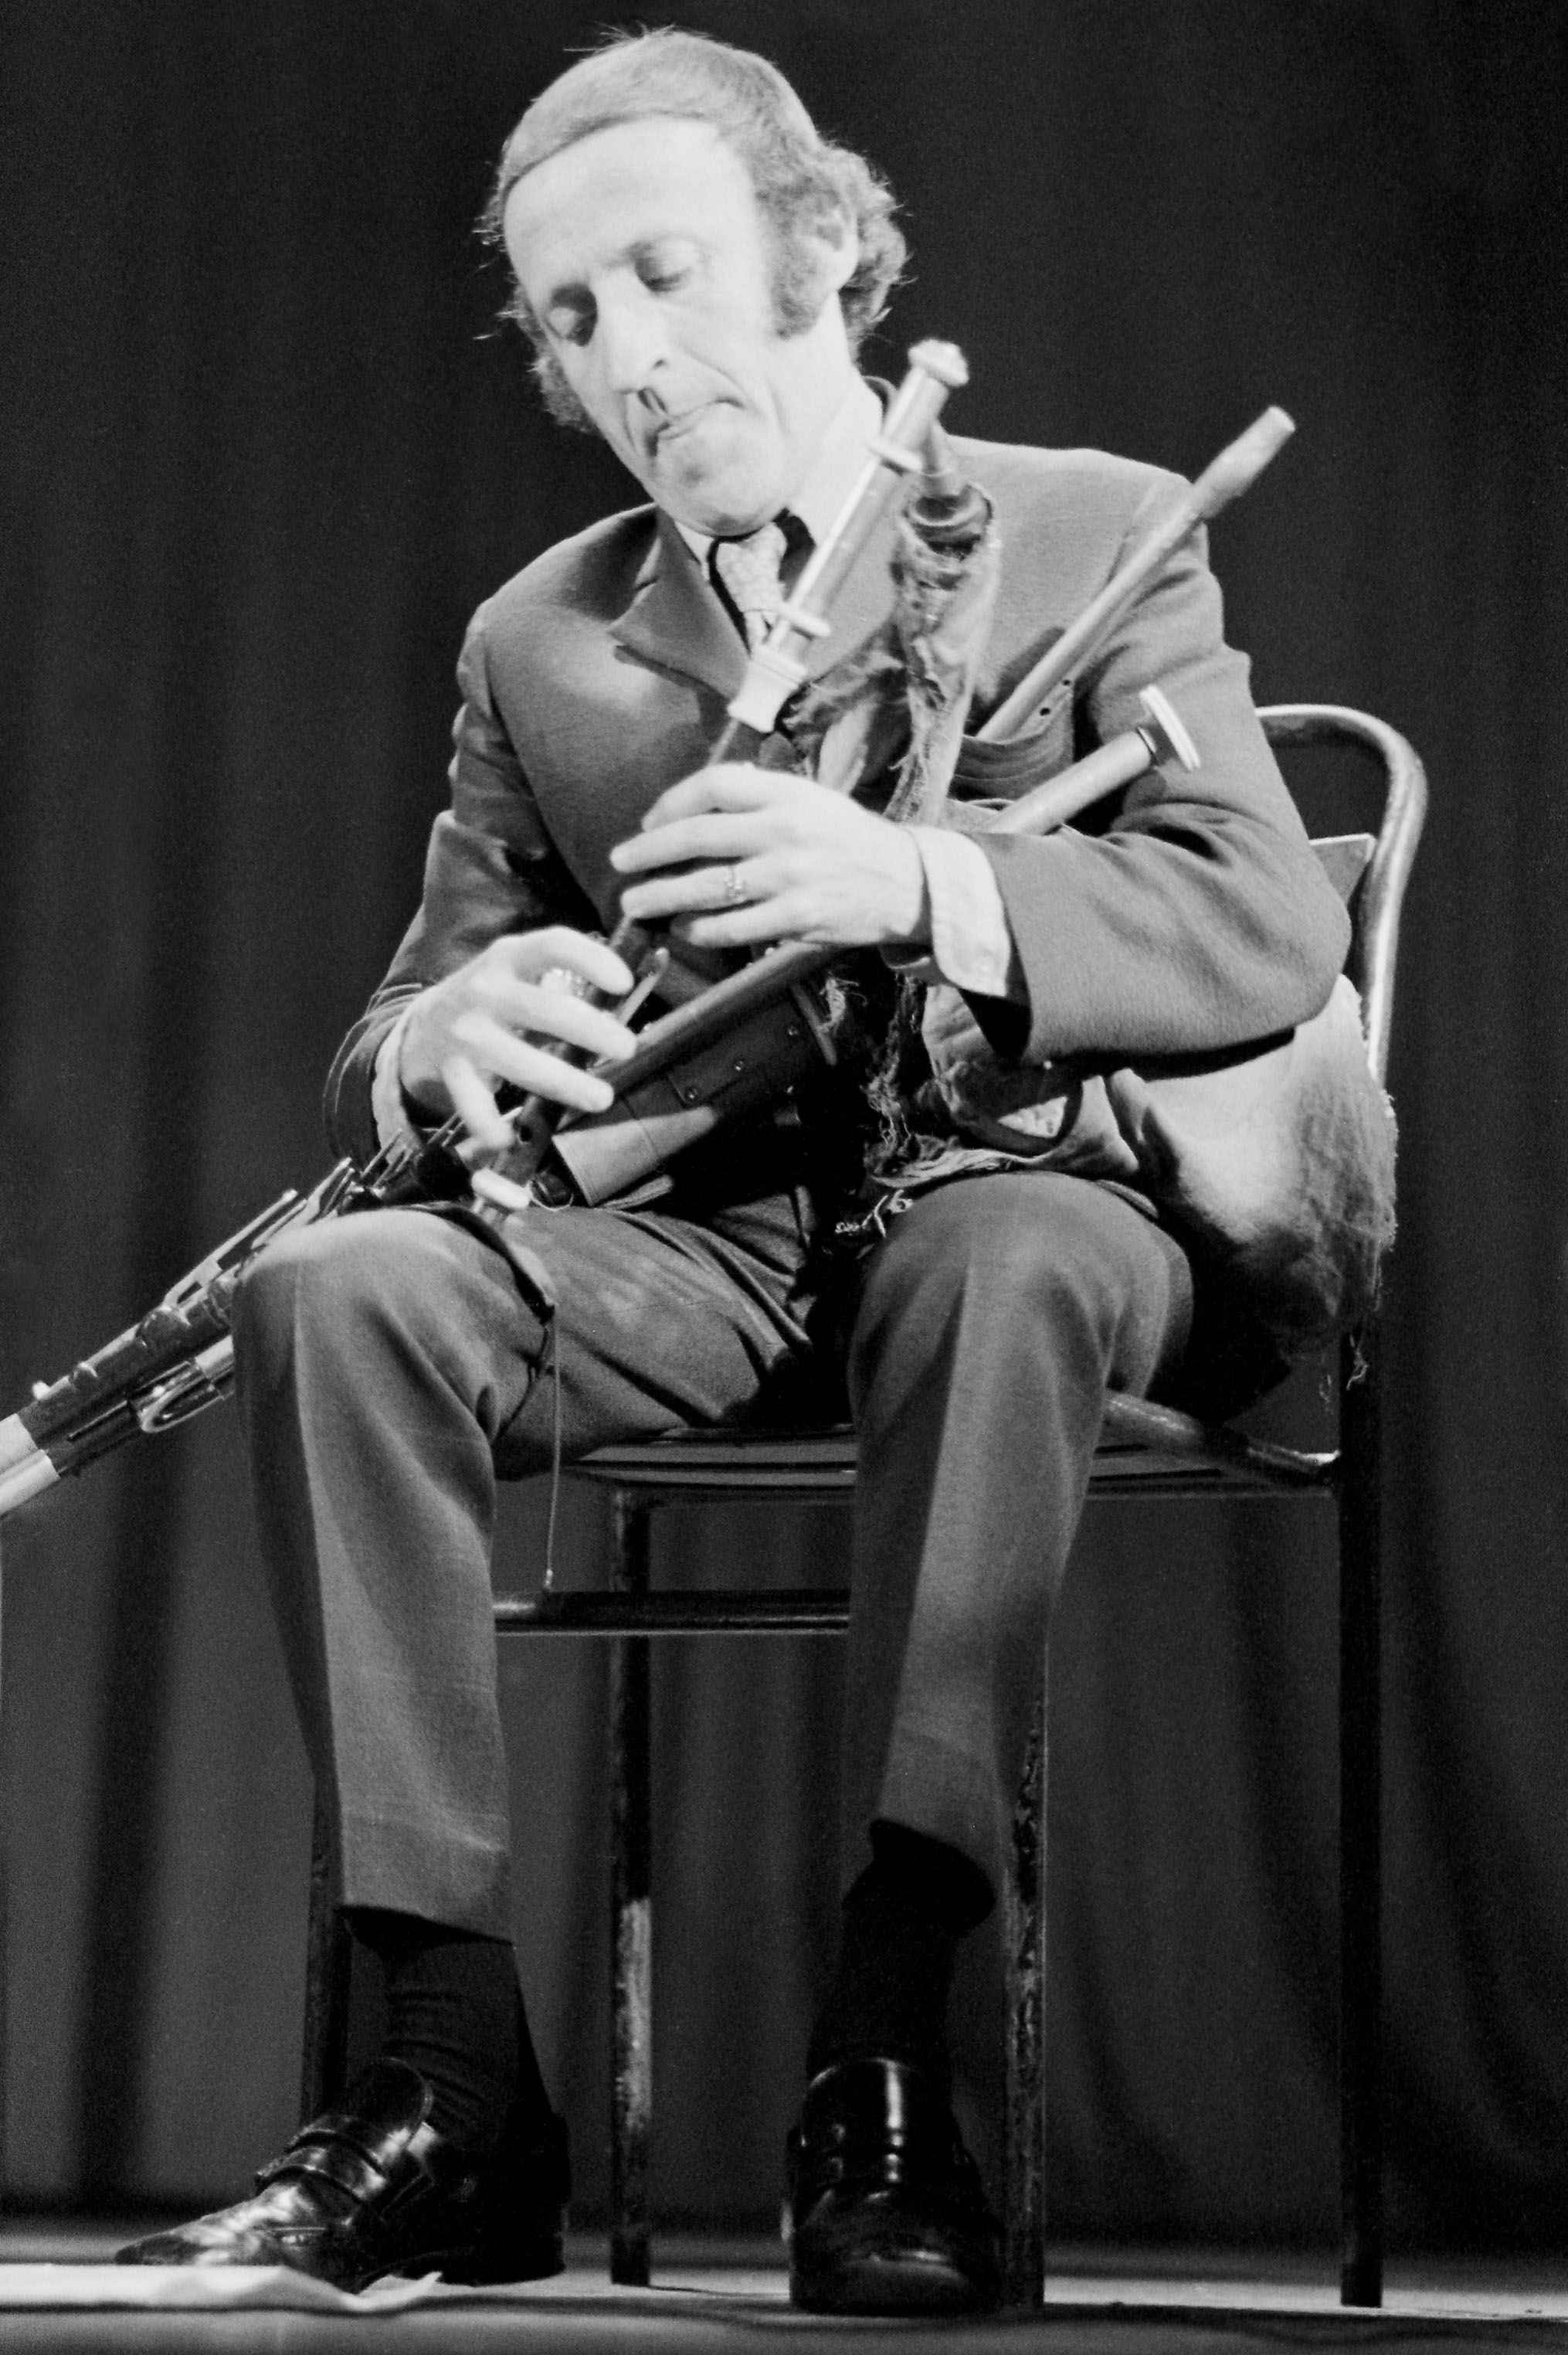 Paddy Moloney, a master of the uileann pipes